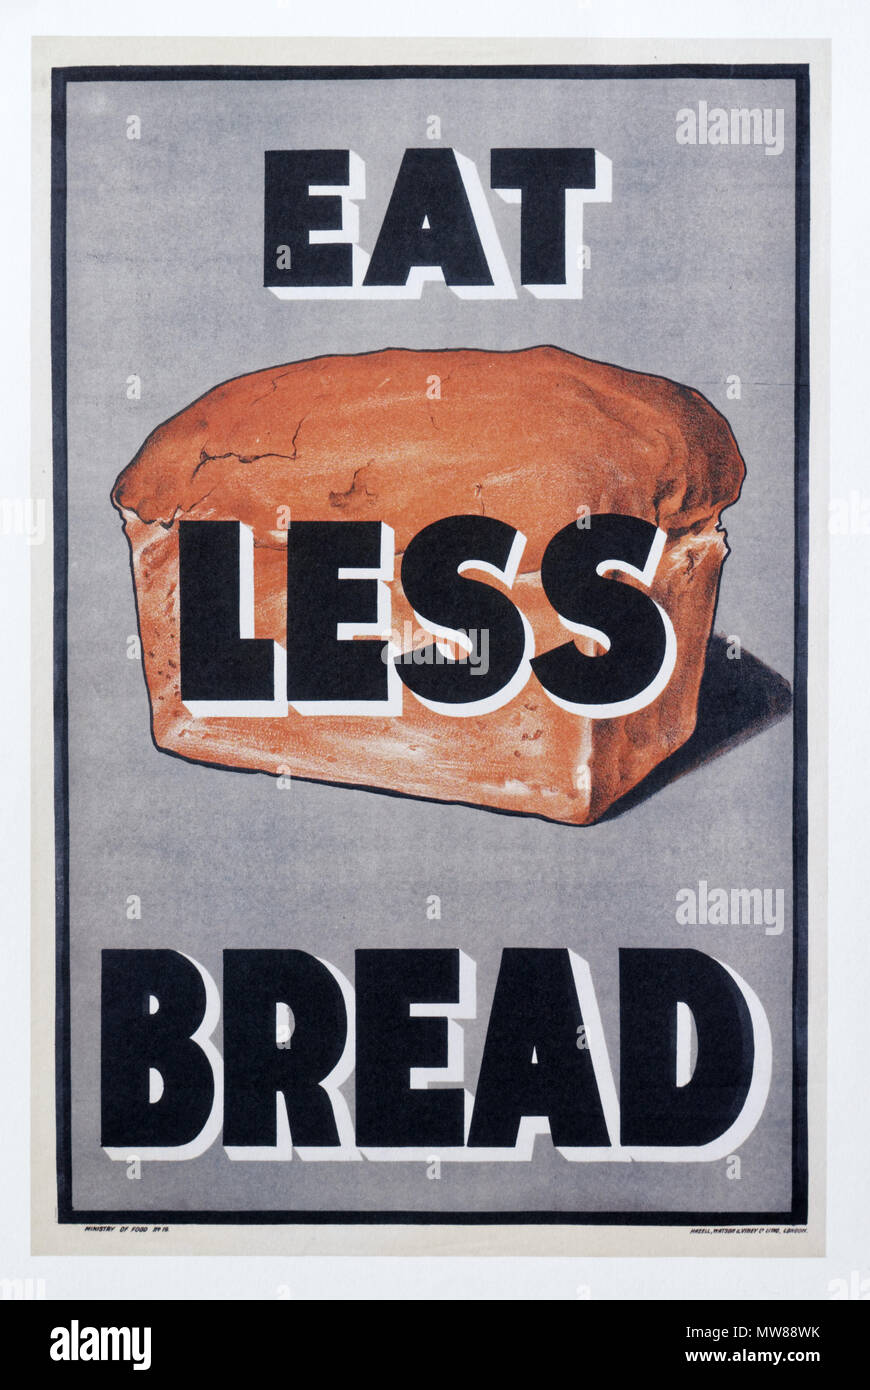 A British first world war poster ecouraging people not waste bread - Stock Image